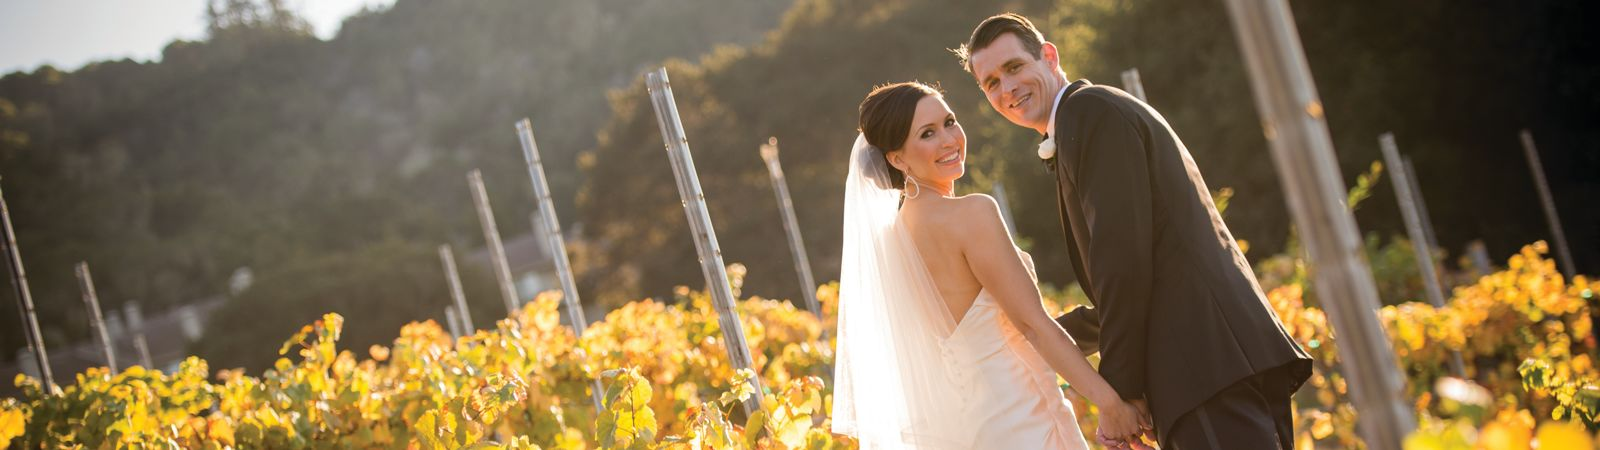 Carmel Valley Ranch_Wedings_wedding couple in fall vineyard